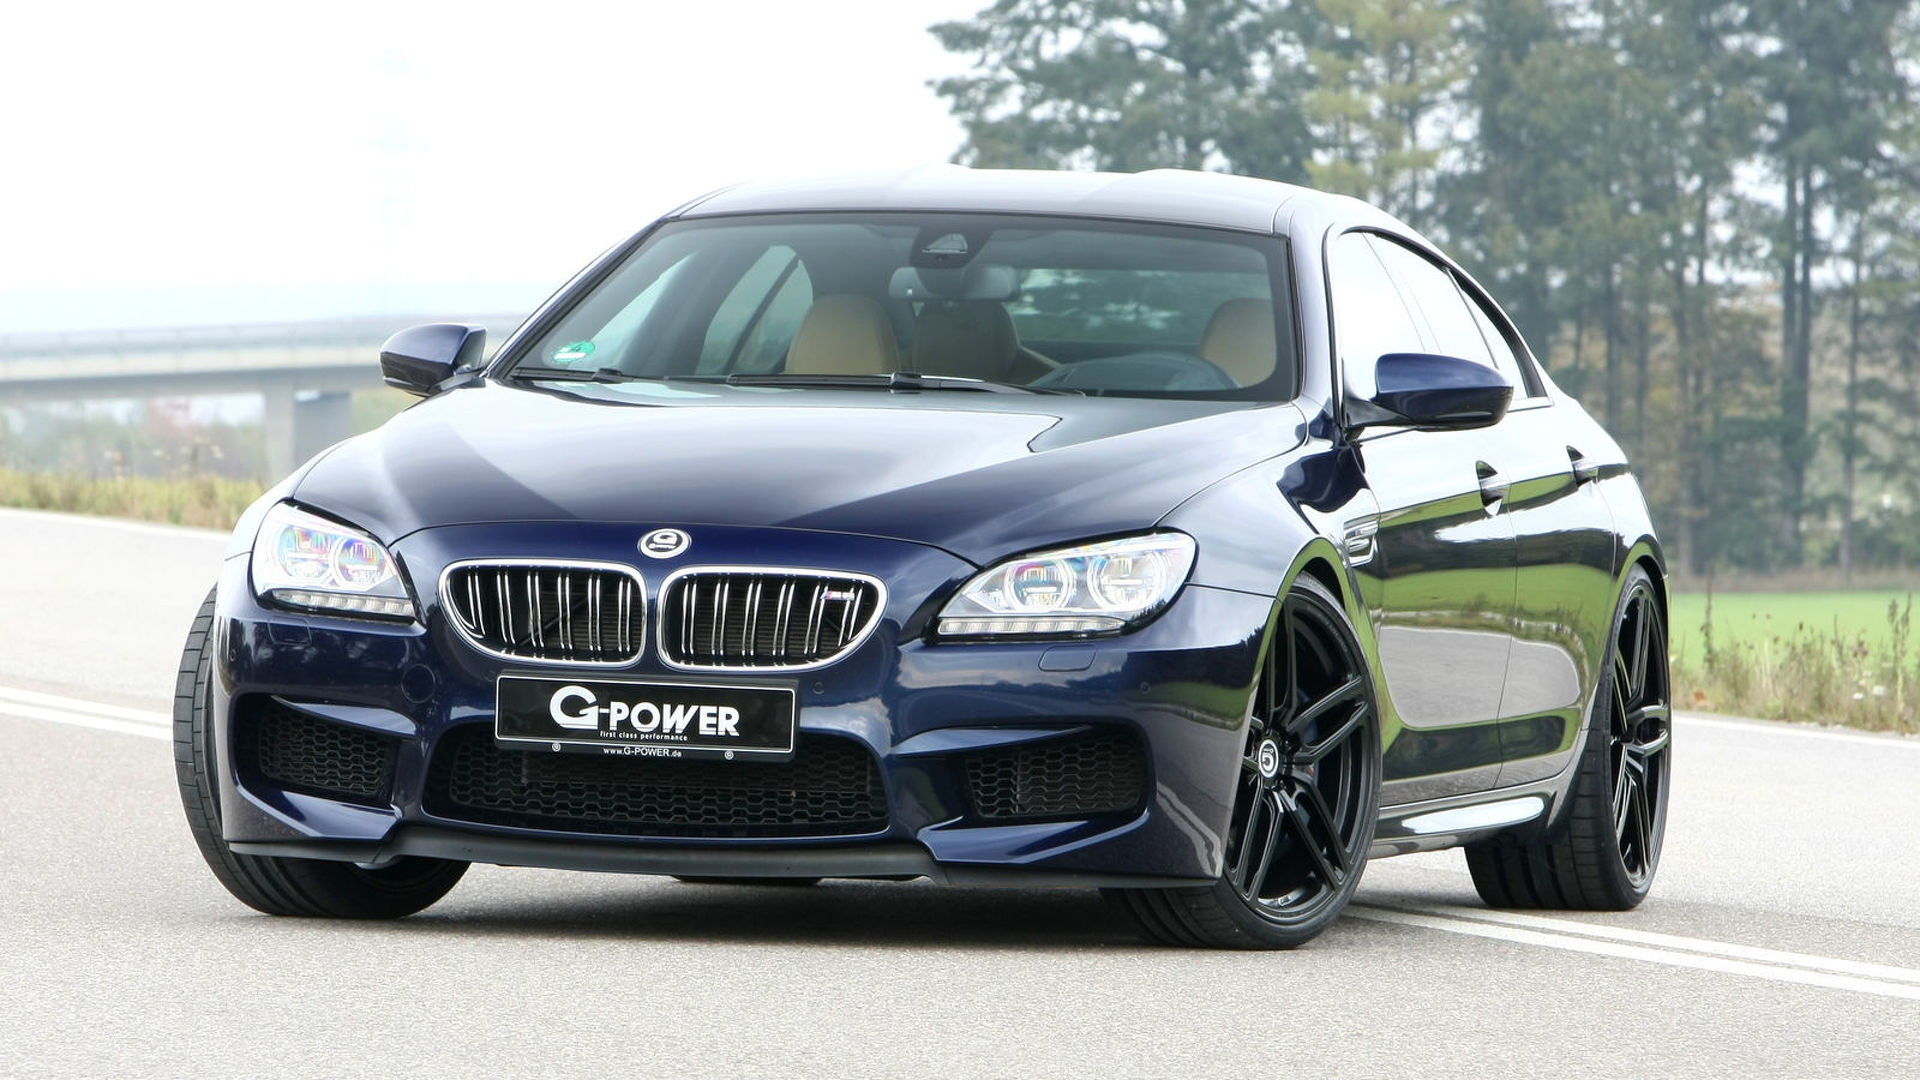 740 Hp Bmw M6 Gran Coupe Is Tuning Done Right